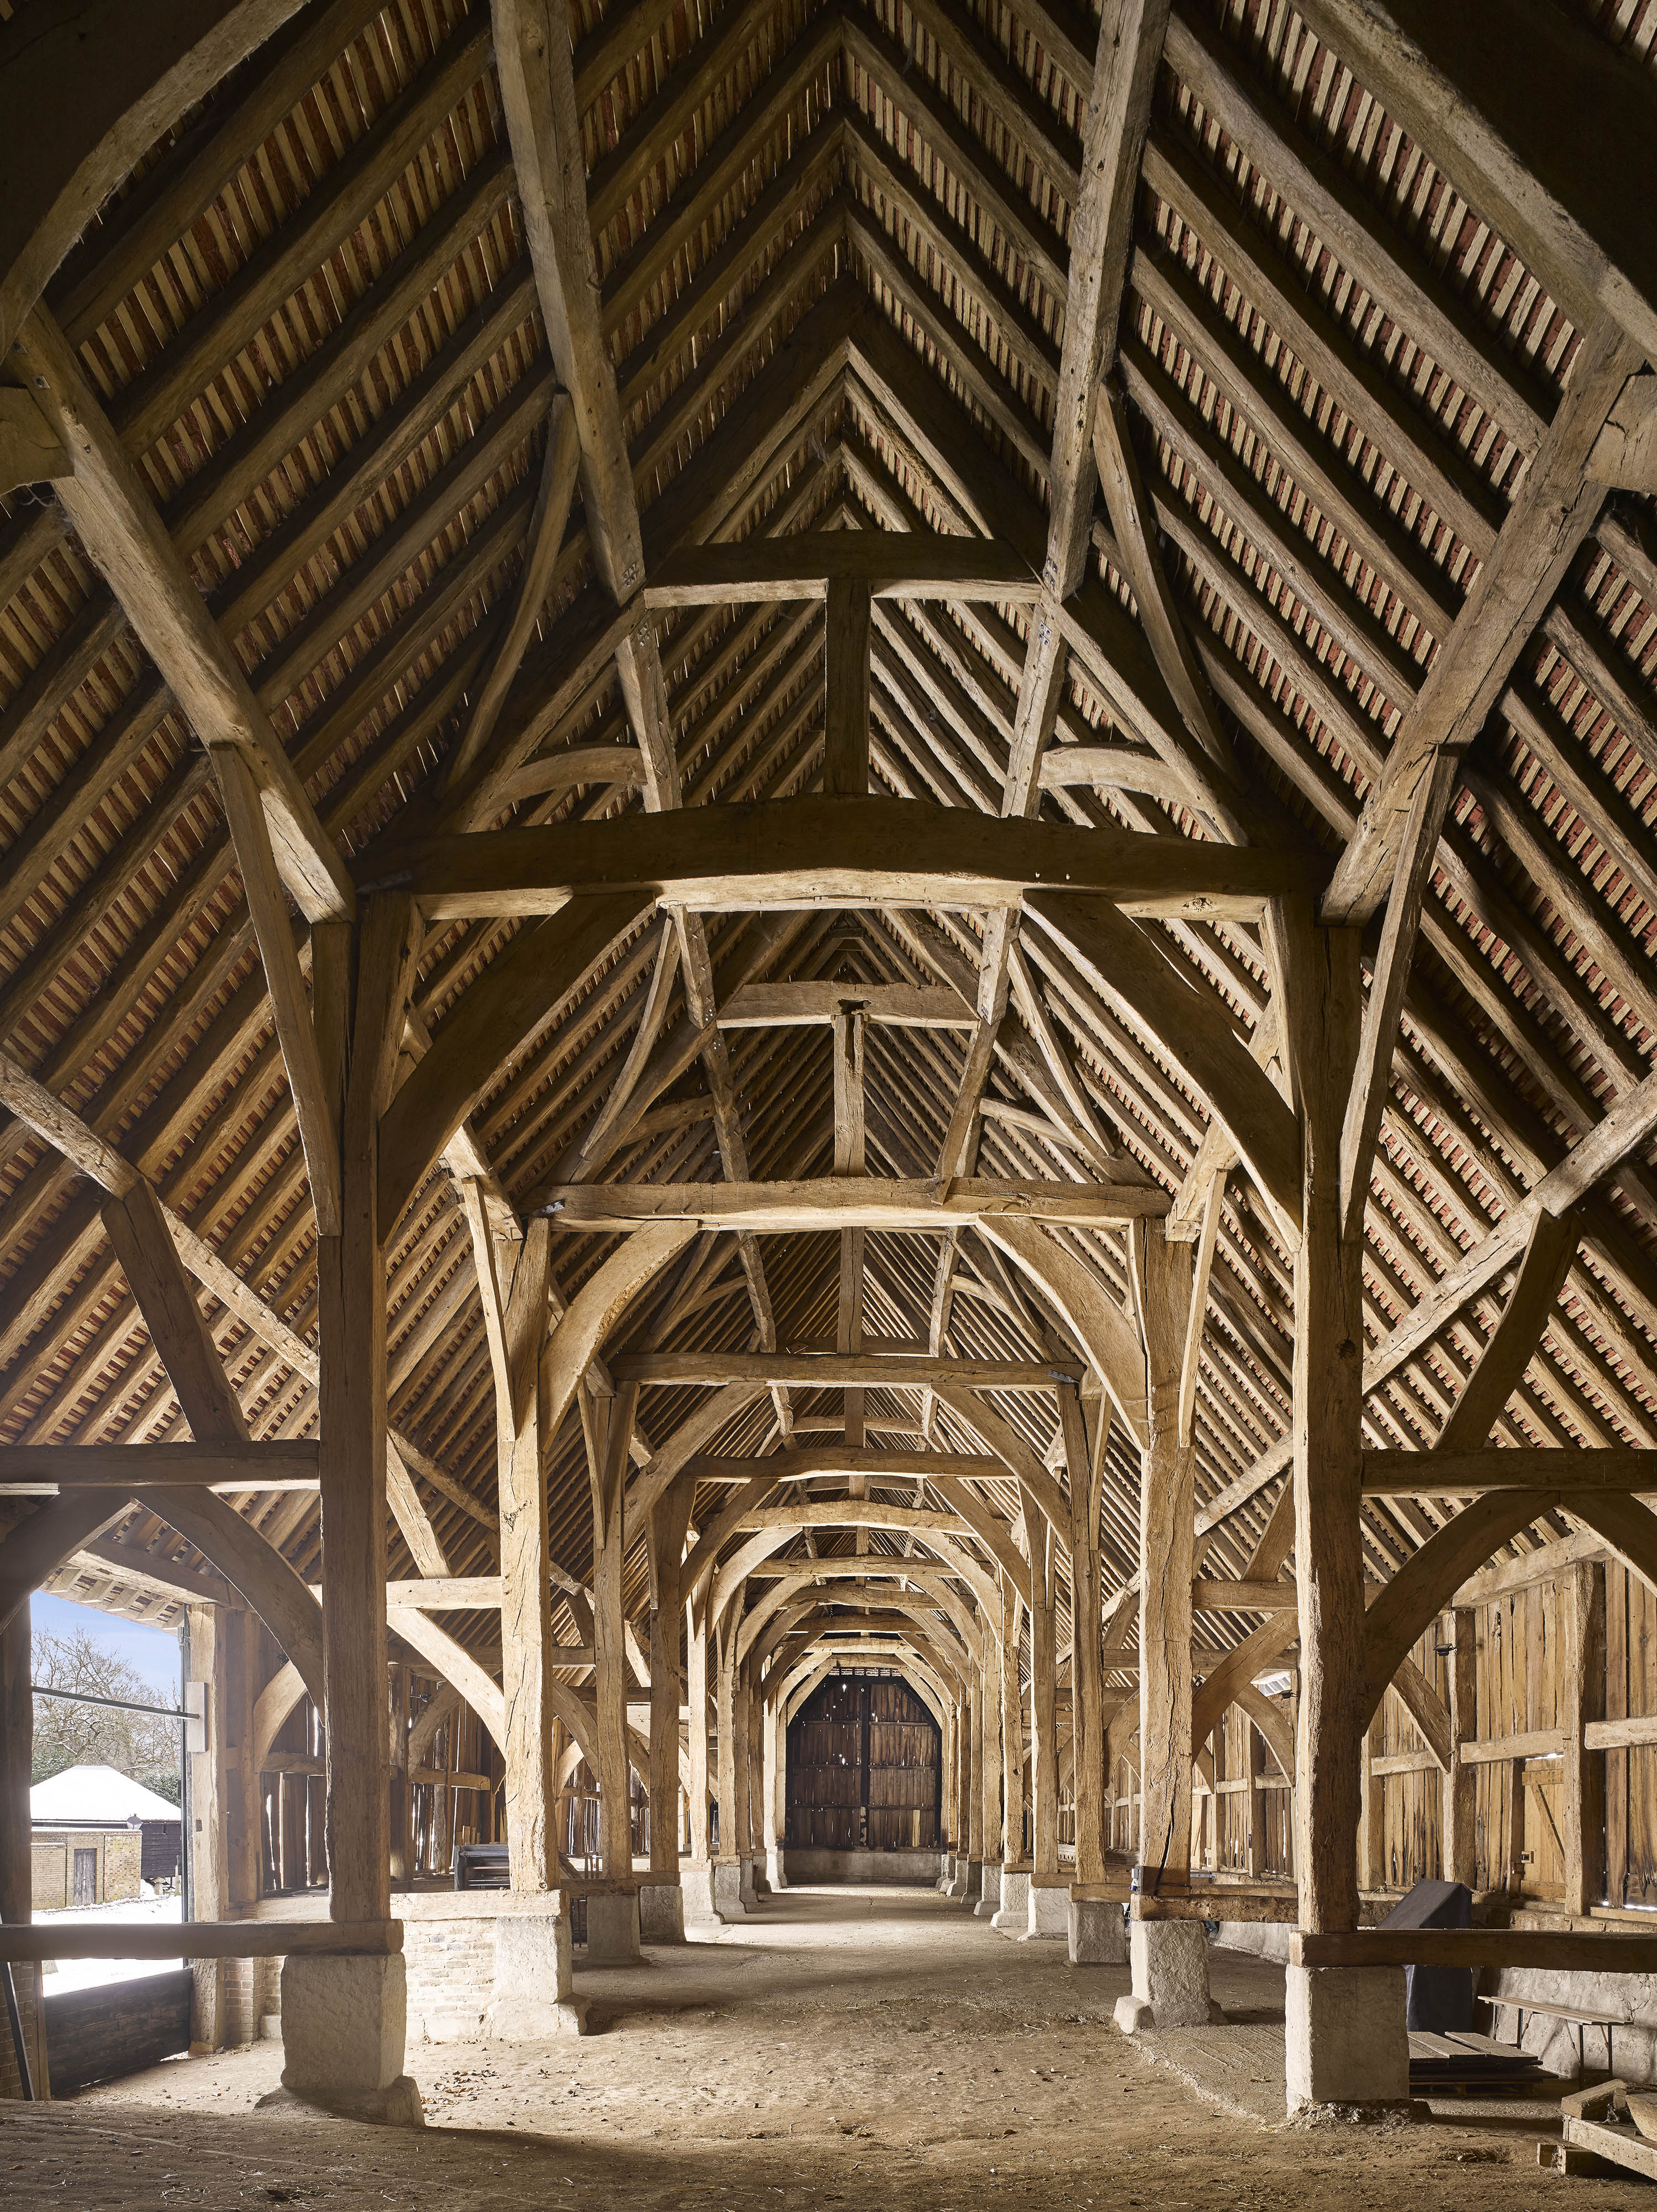 adfd37fafba2d The Great Barn at Harmondsworth: 600 years of grandeur, history and  restoration, now under threat by Heathrow's third runway